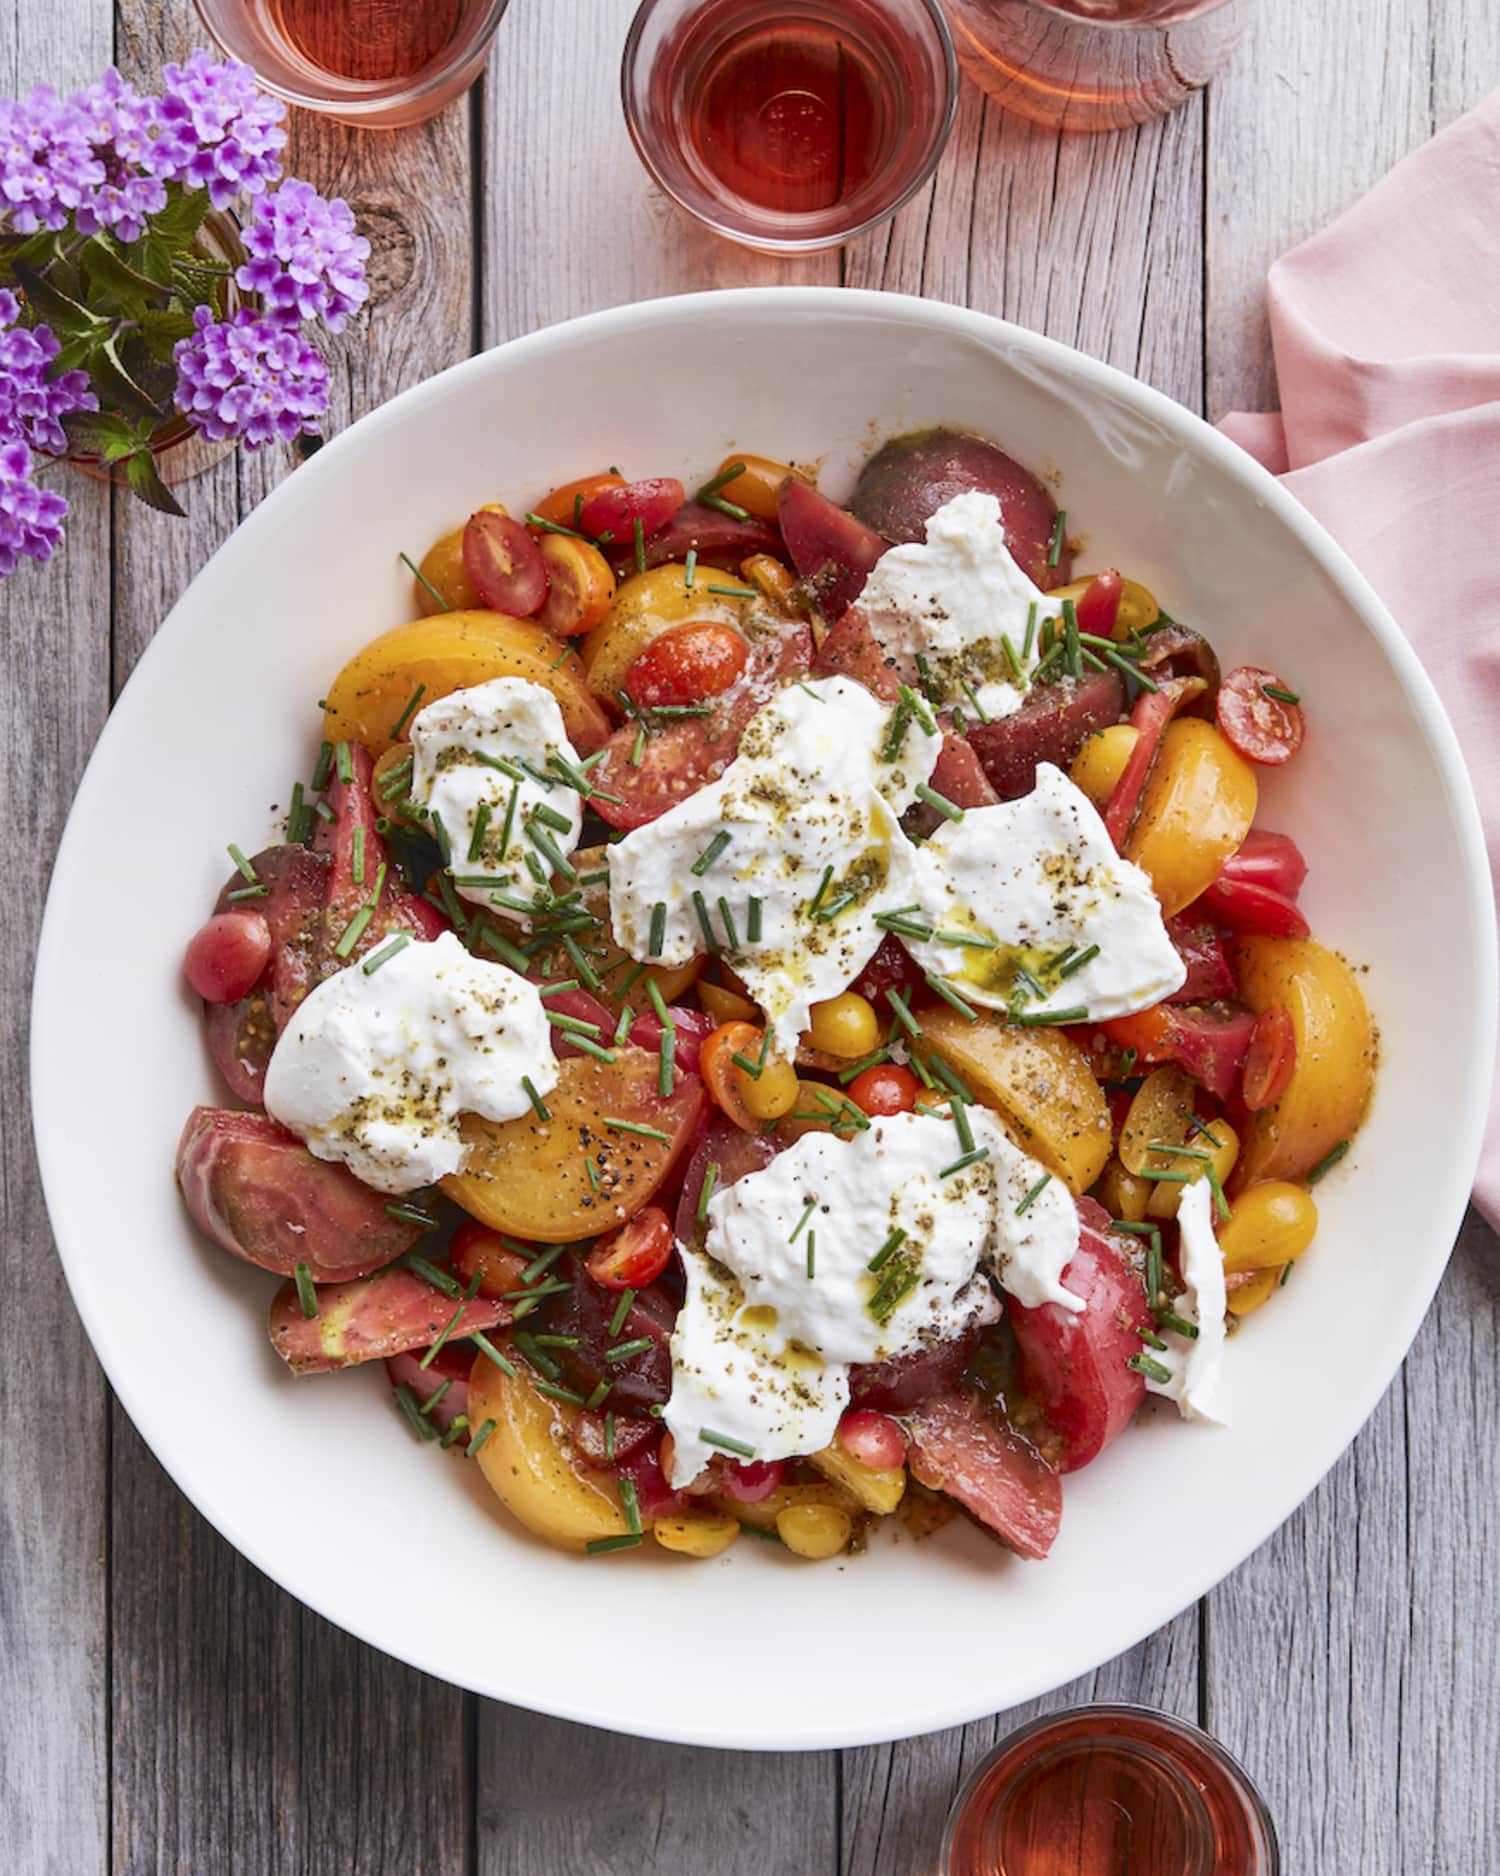 Here's a Smart Tip for Marinated Tomato and Burrata Salad